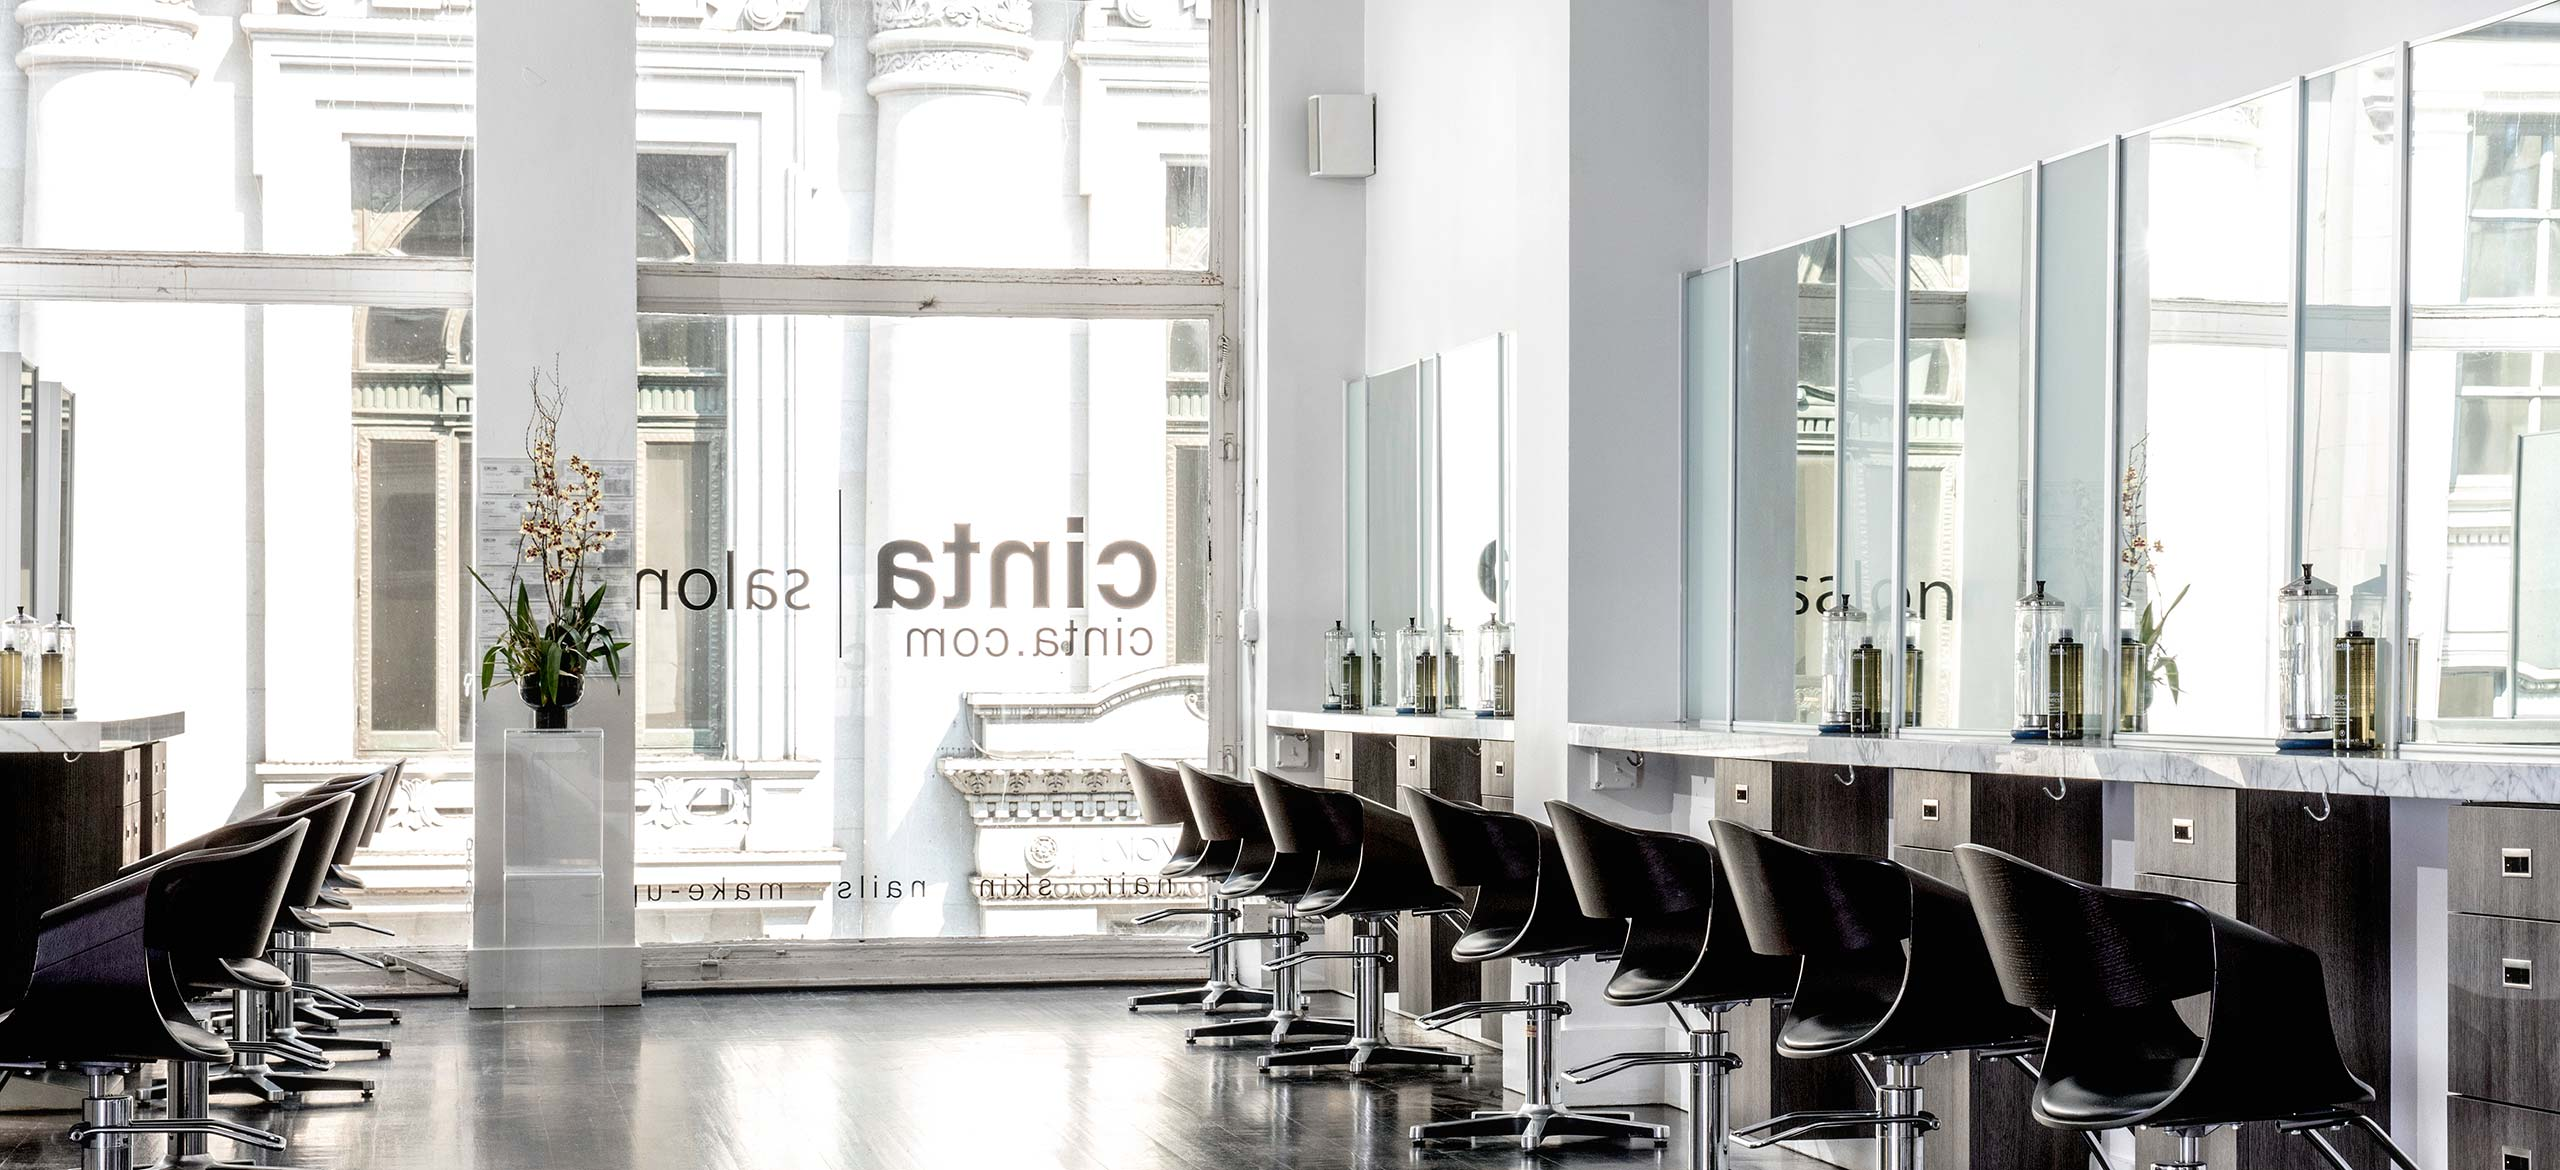 Cinta Salon - Row of Stations and Window